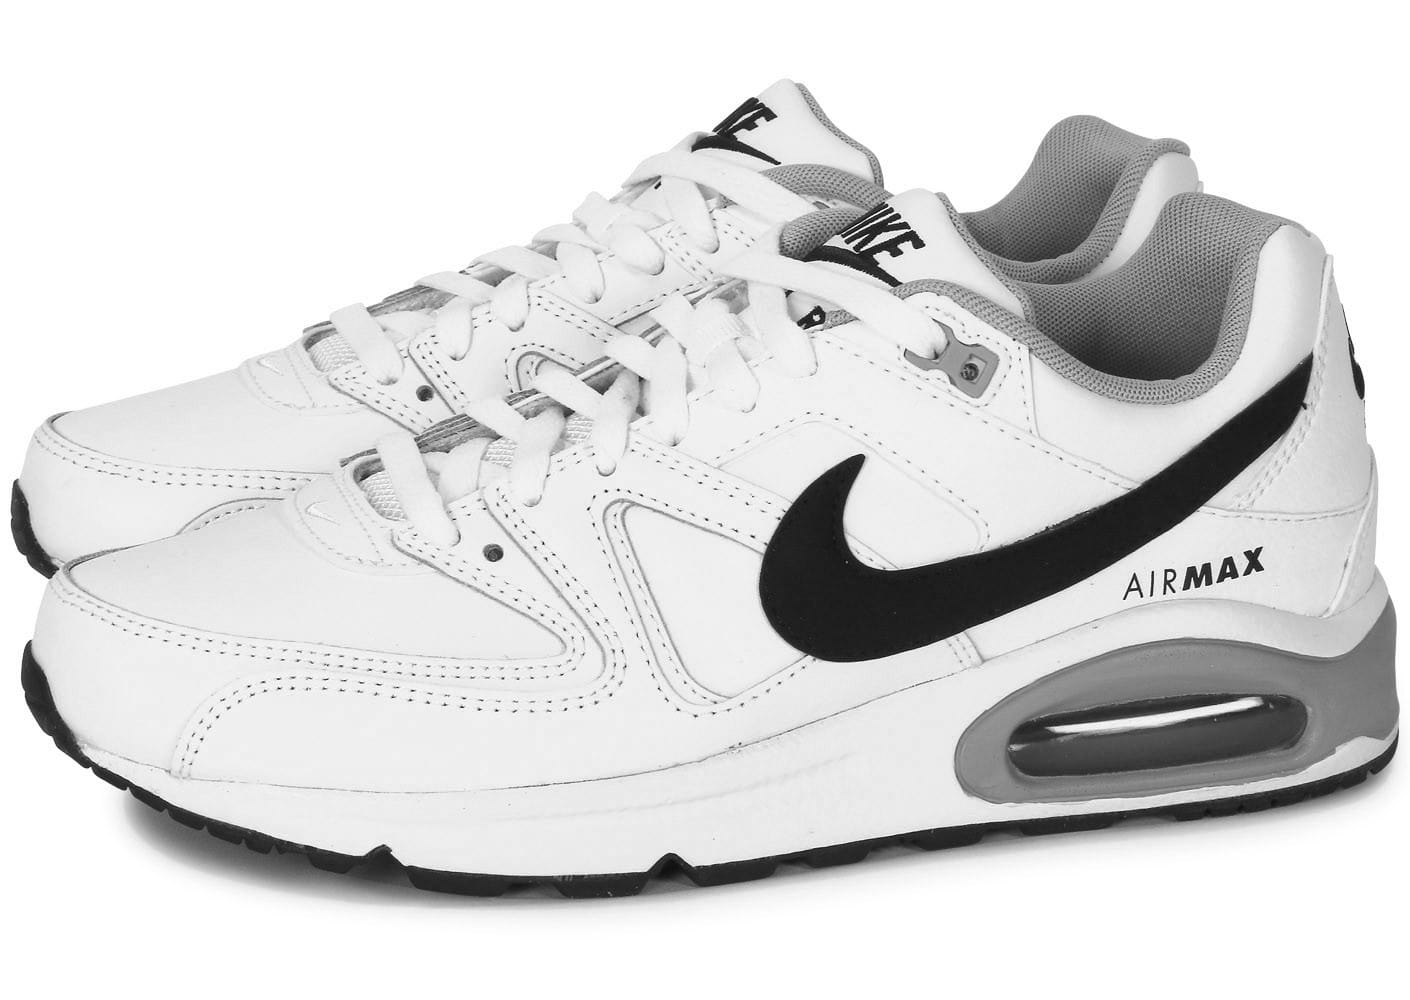 Chaussures Nike Air Max Command blanches garçon Falcotto SMITH Ankle Boots Enfant 23 Dm1szNt